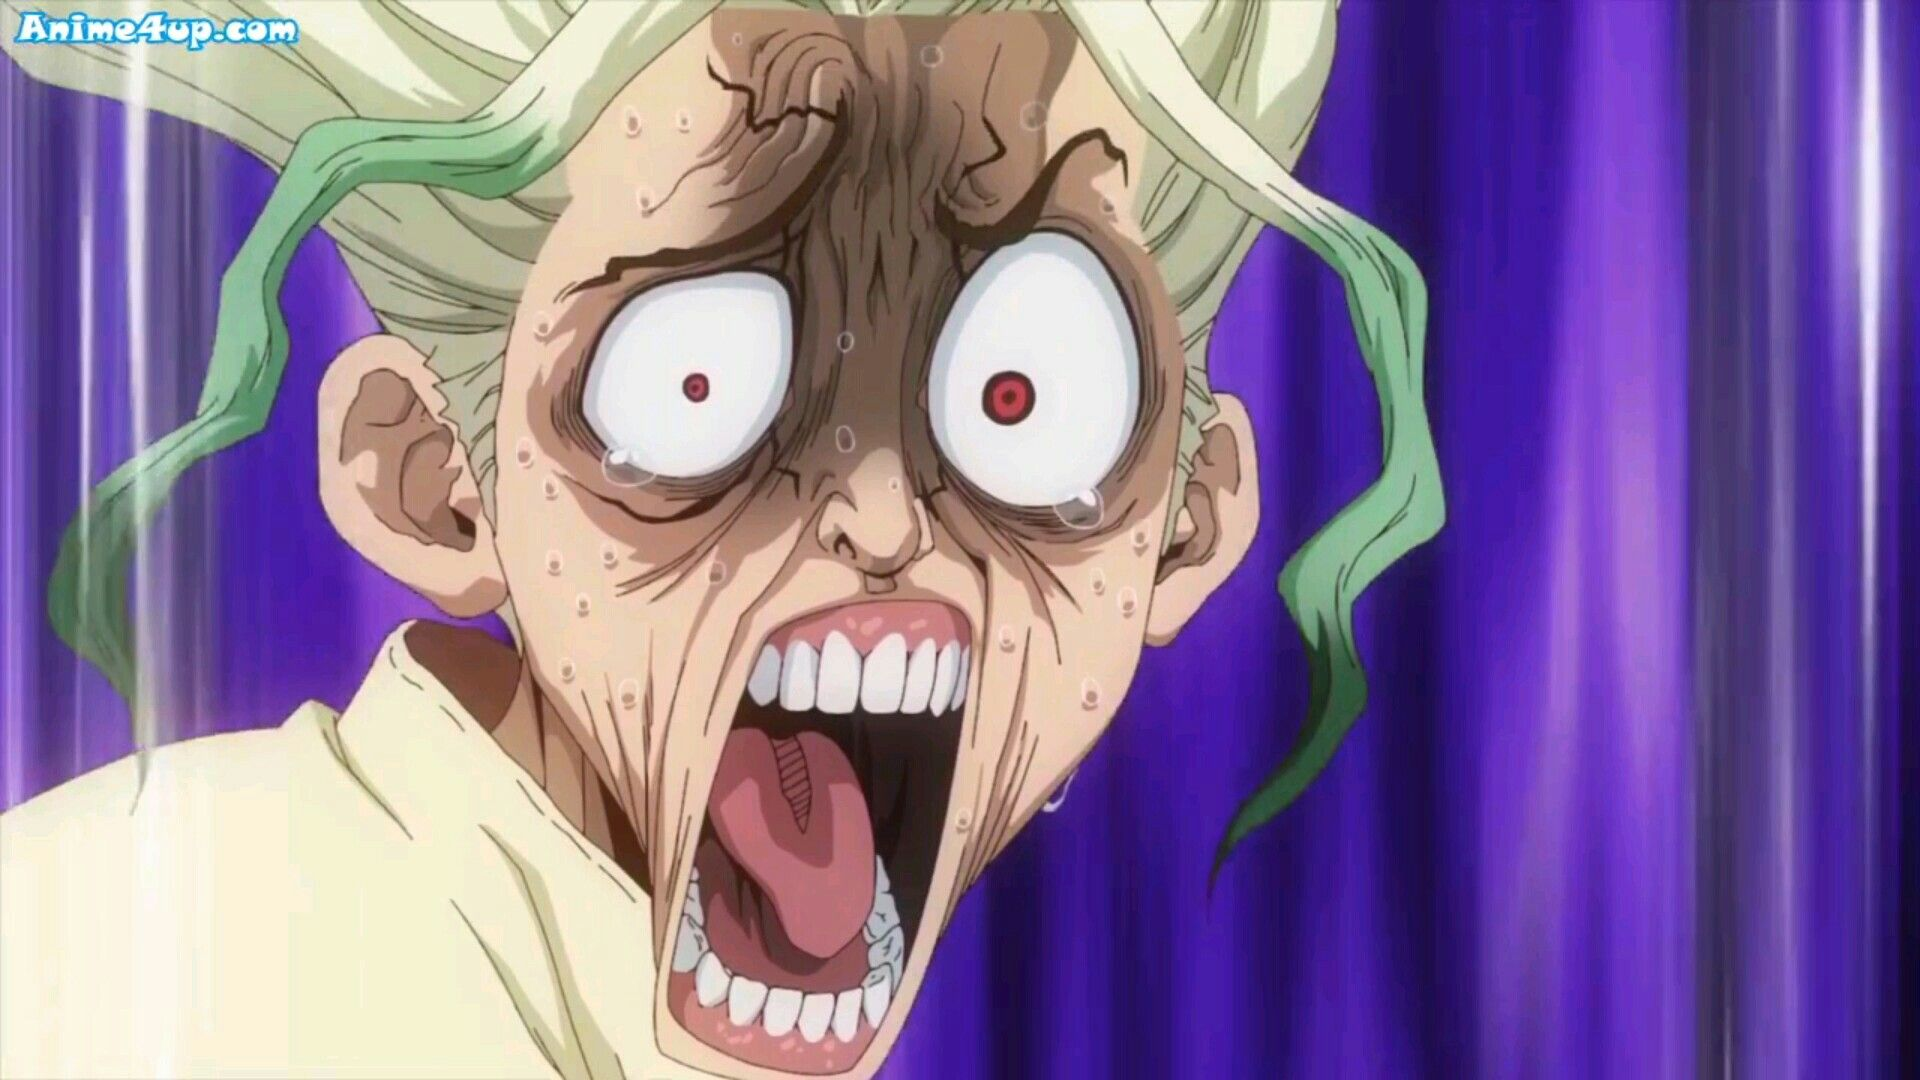 Dr Stone Funny Face Wallpaper Anime Faces Expressions Anime Anime Expressions